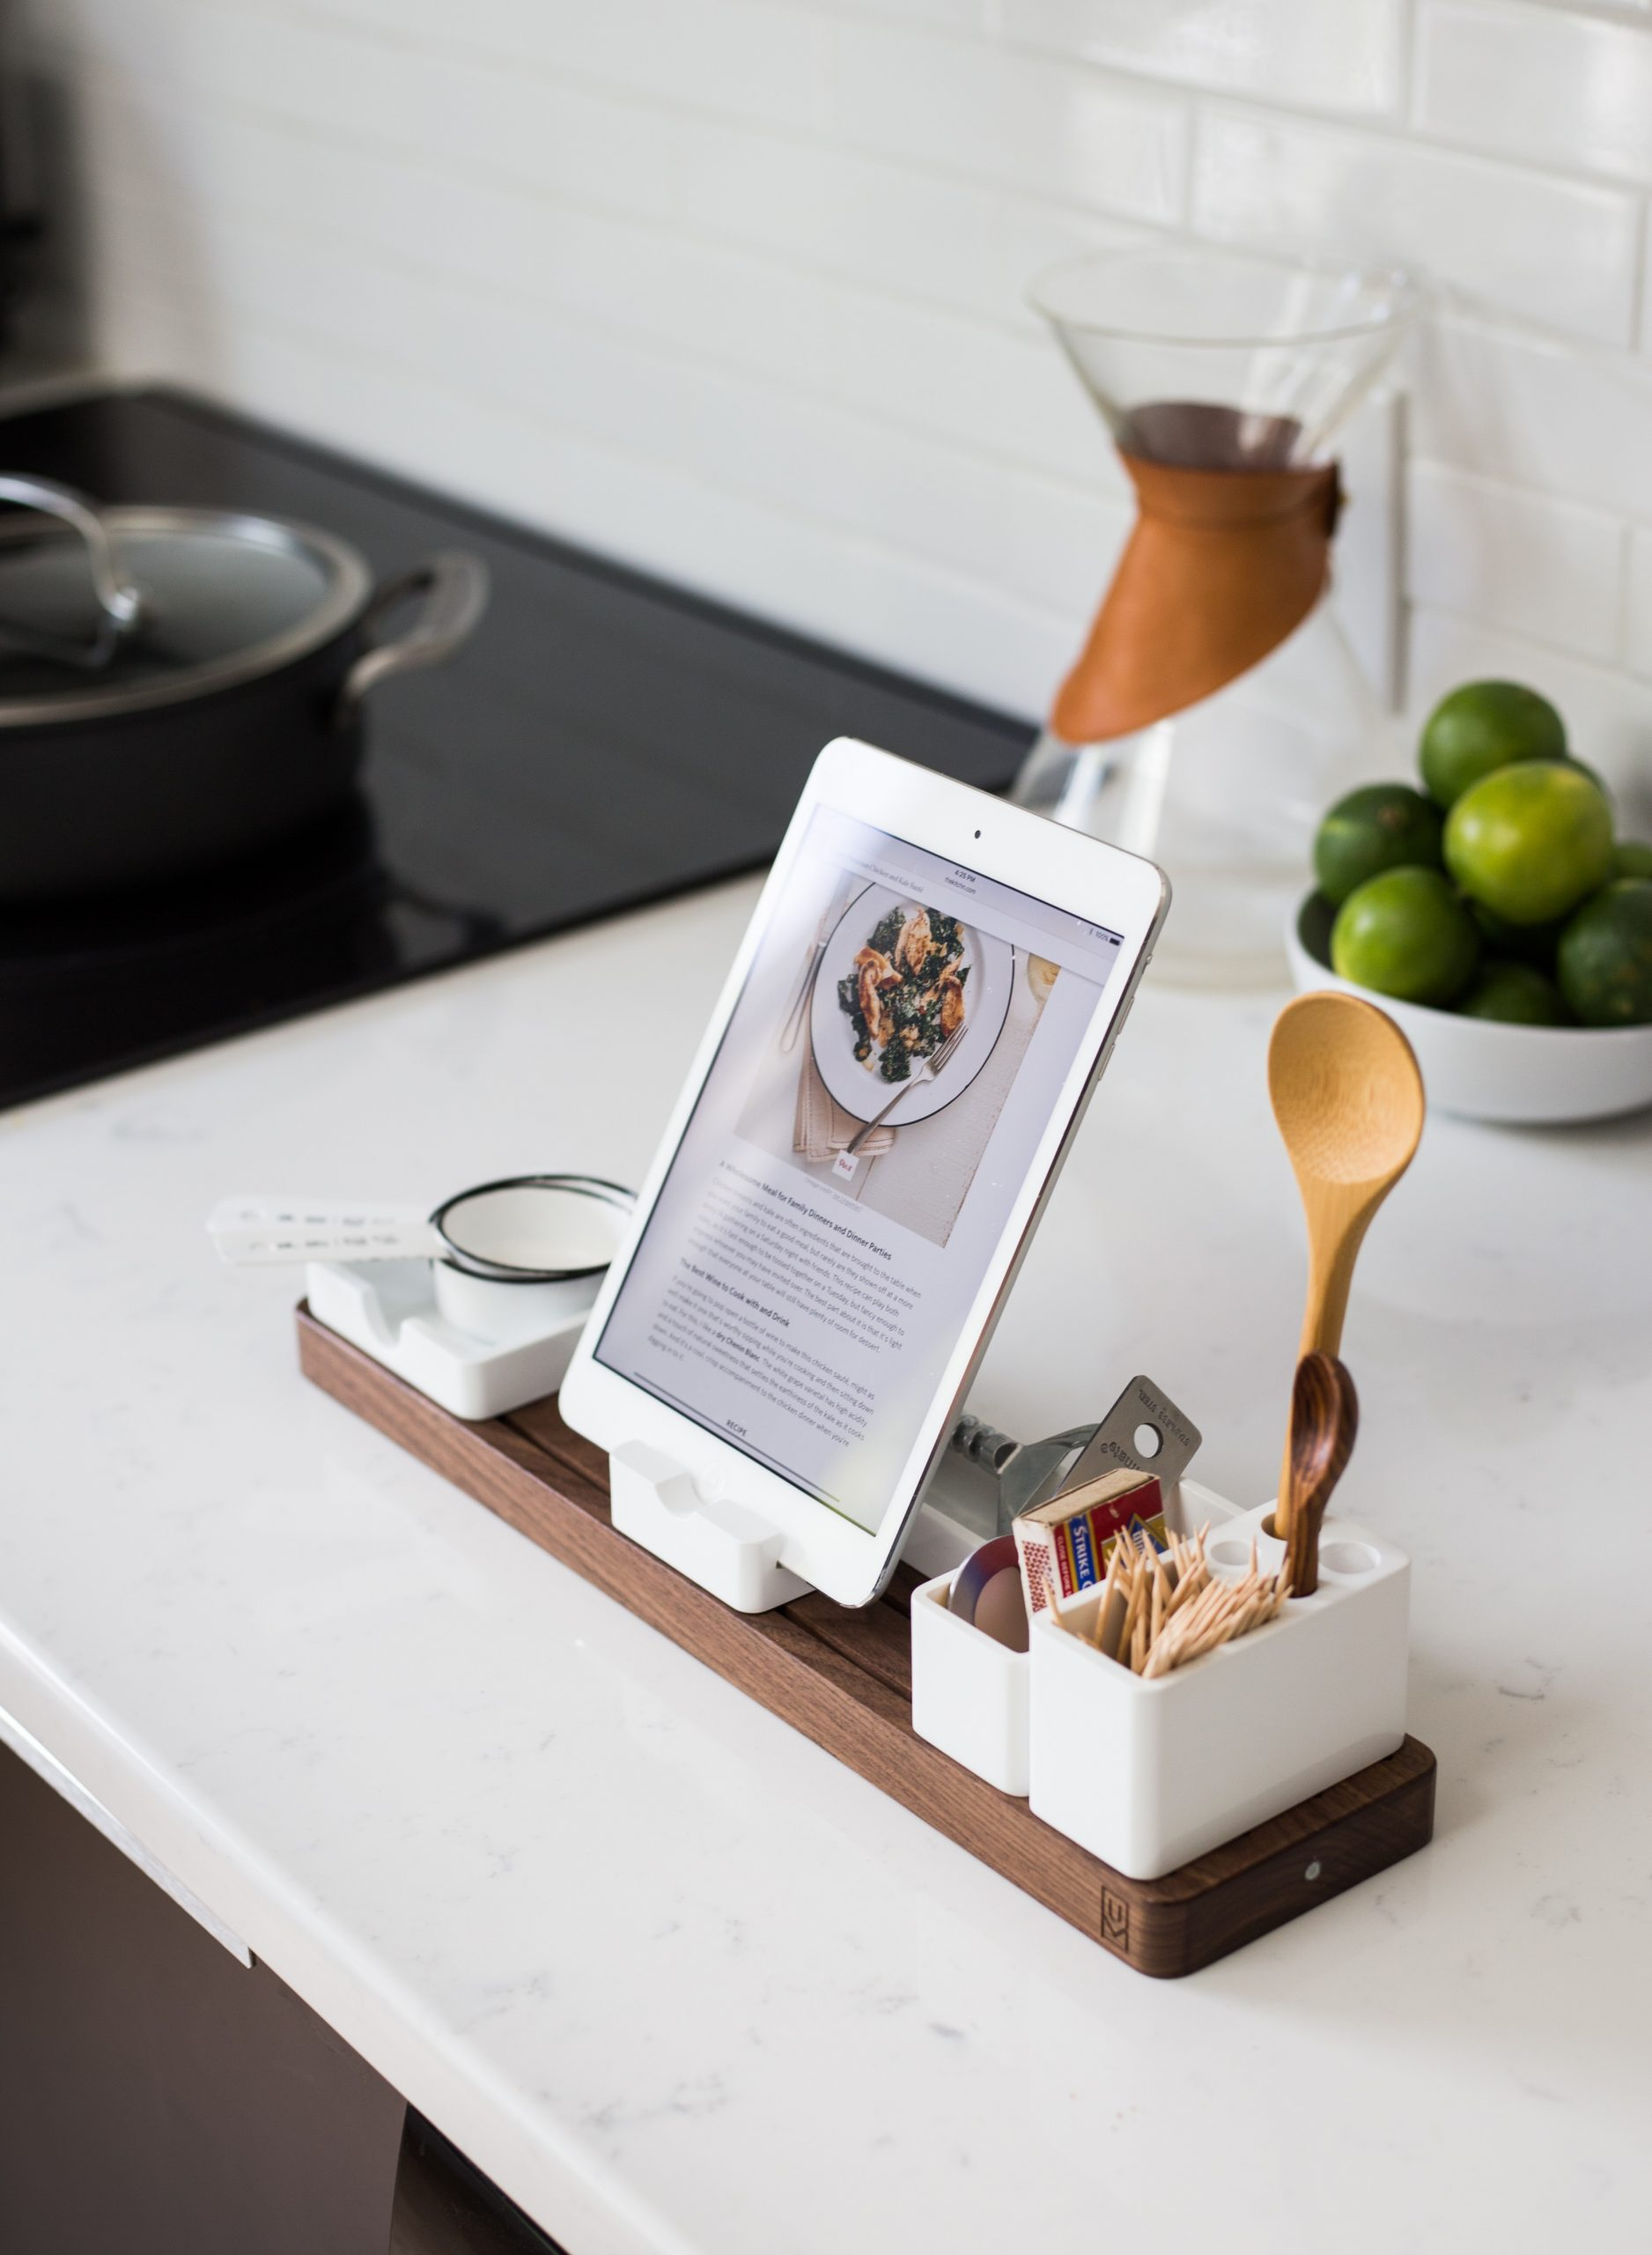 a tablet showing a food website page on a tabletop organizer on the kitchen countertop